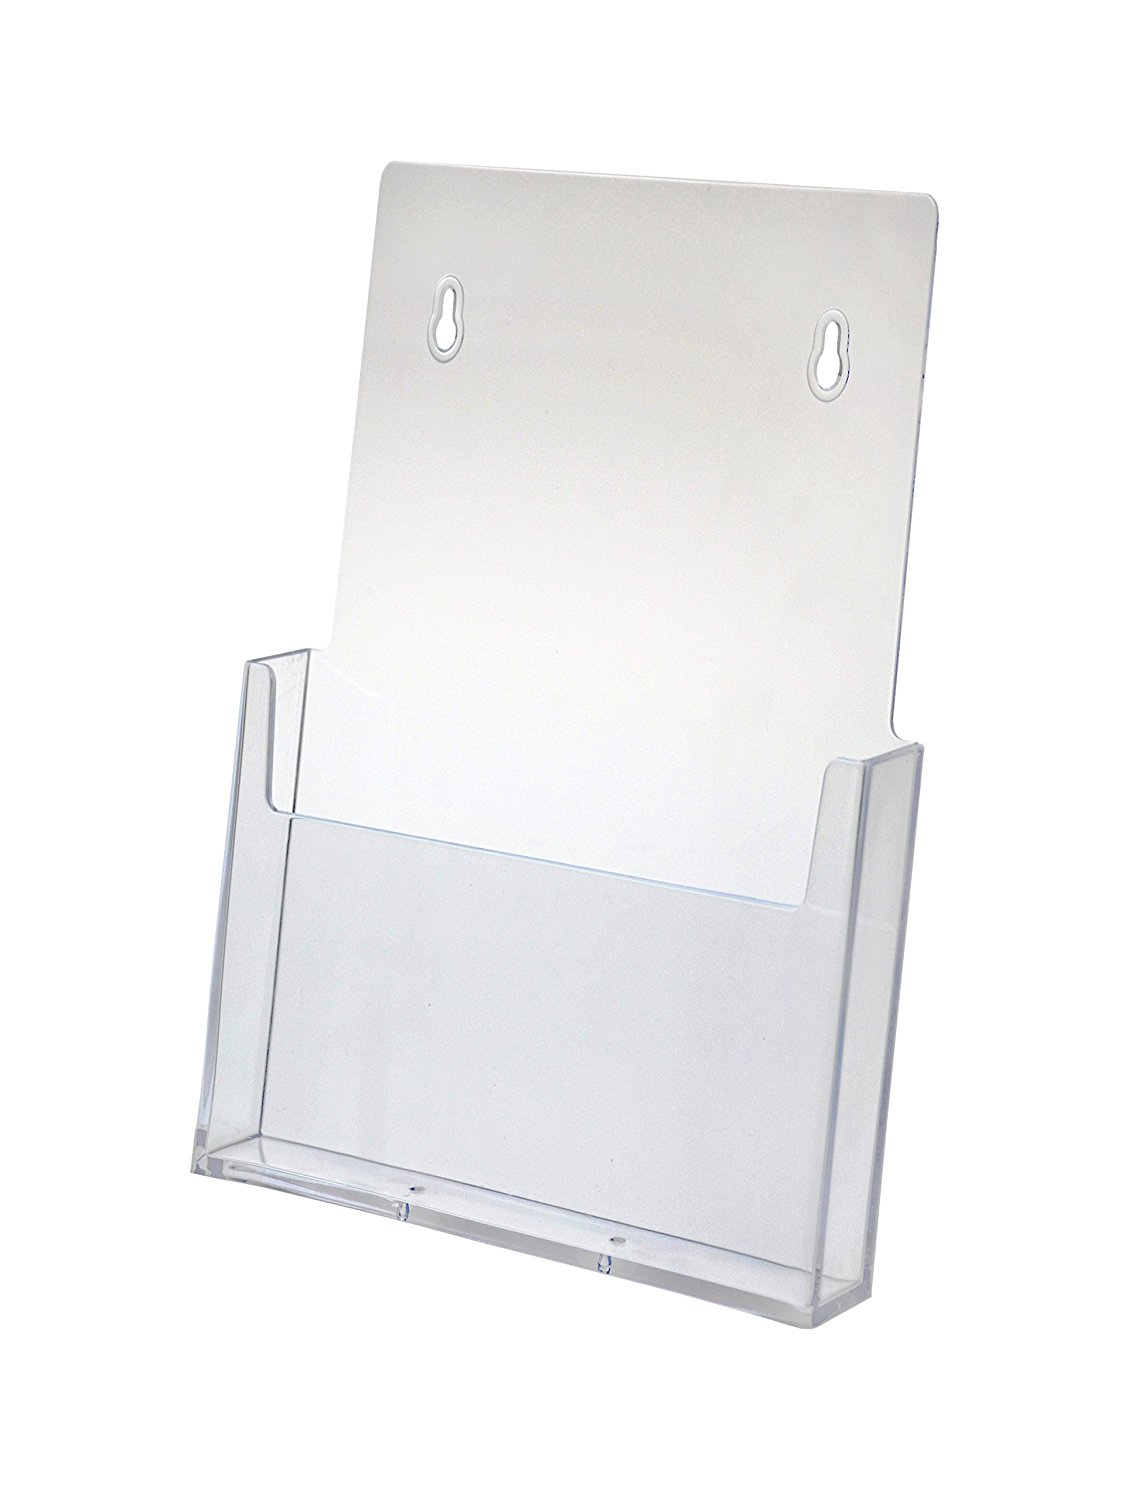 Marketing Holders Brochure Holder for 8.5 X 11 Literature, Clear Acrylic, Single Pocket, Slant Back Wall Mount Design - Sold in Lots of 10